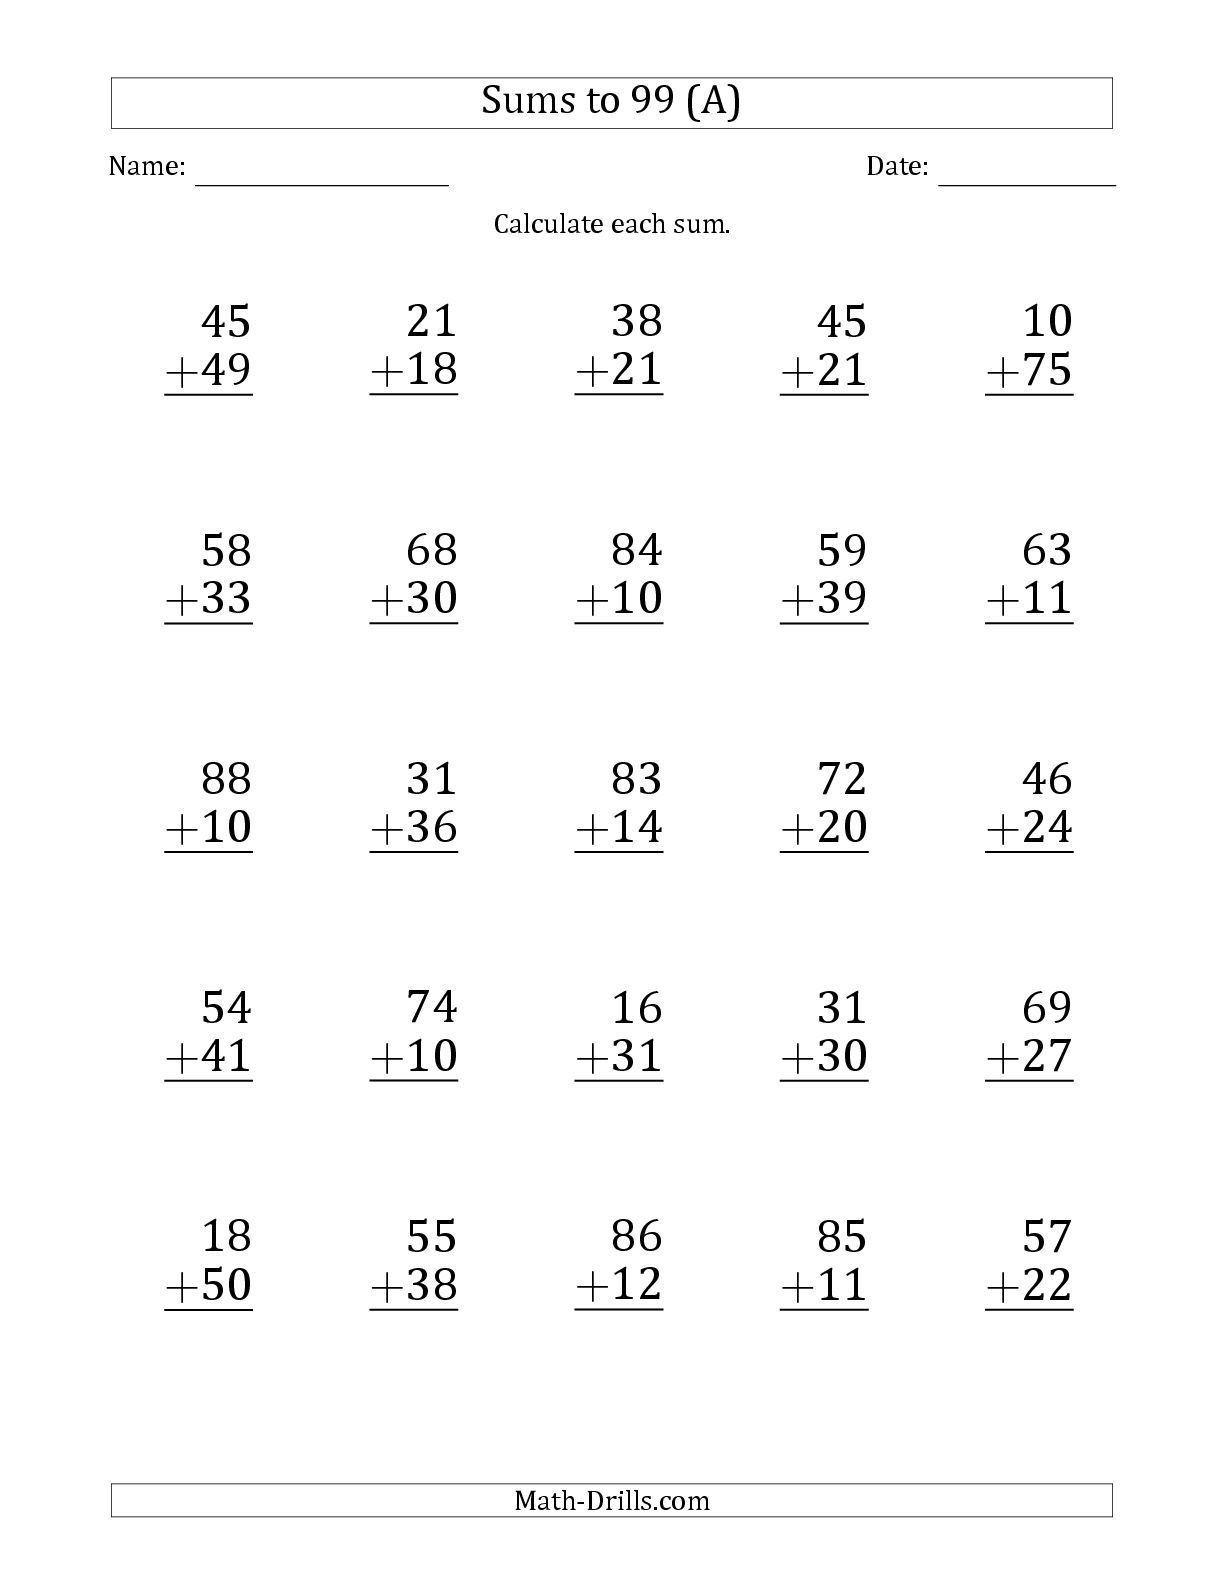 Worksheets Sums Of Addition the large print adding 2 digit numbers with sums up to 99 25 25